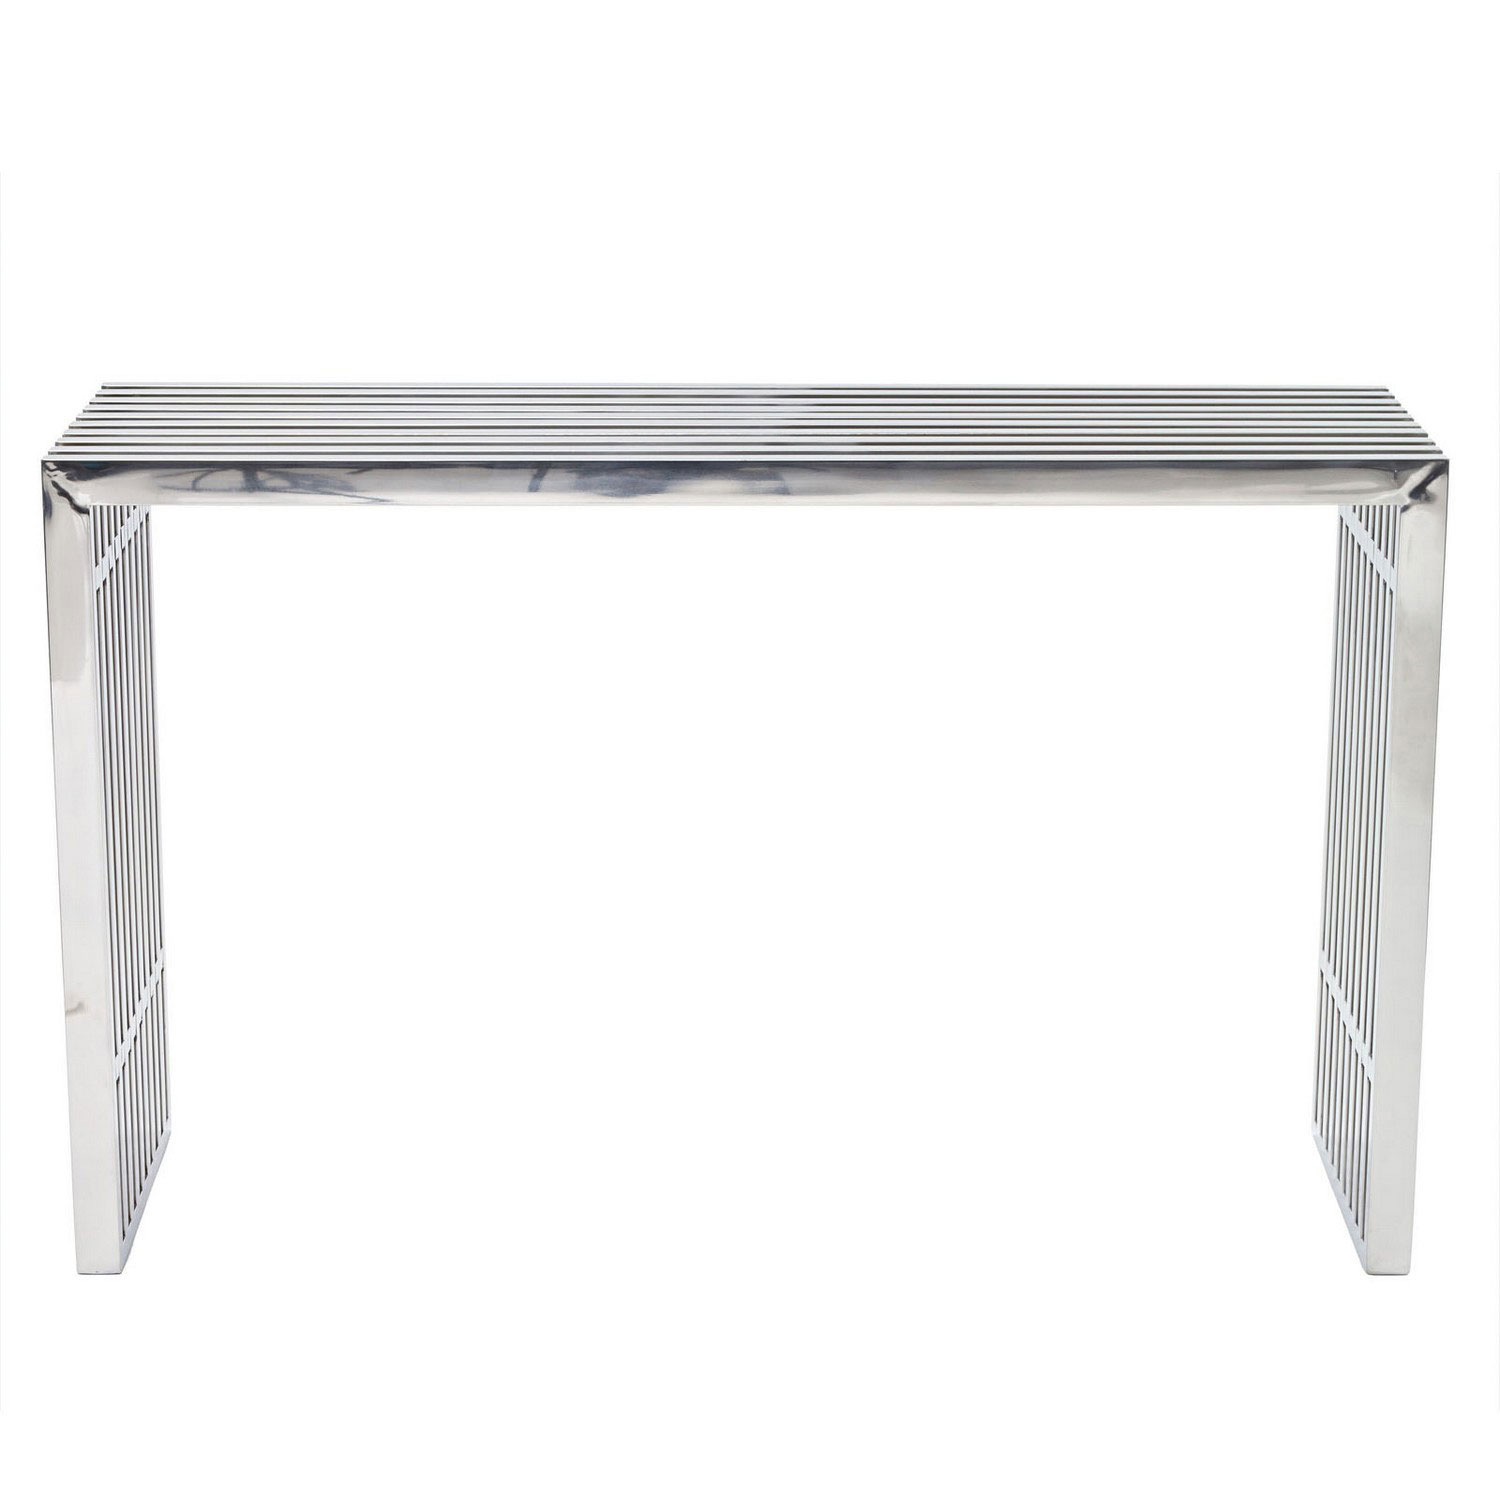 Modway Gridiron Console Table - Silver